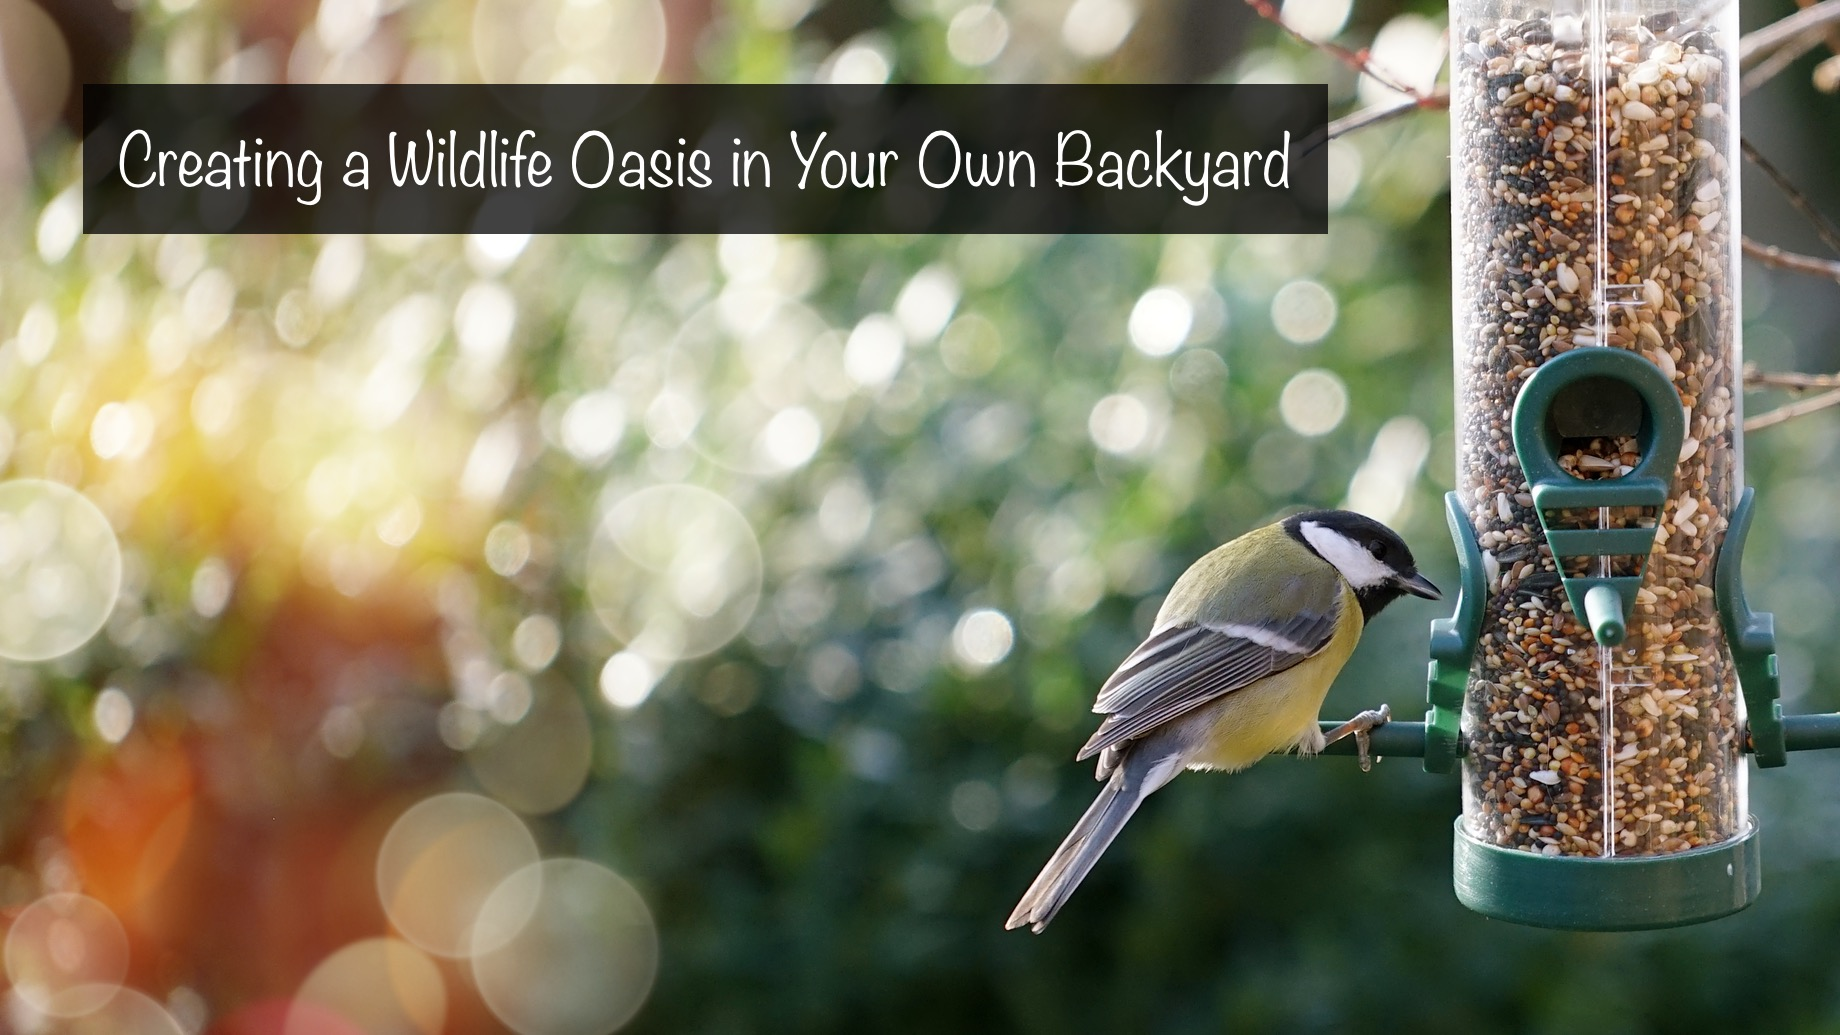 Creating a Wildlife Oasis in Your Own Backyard